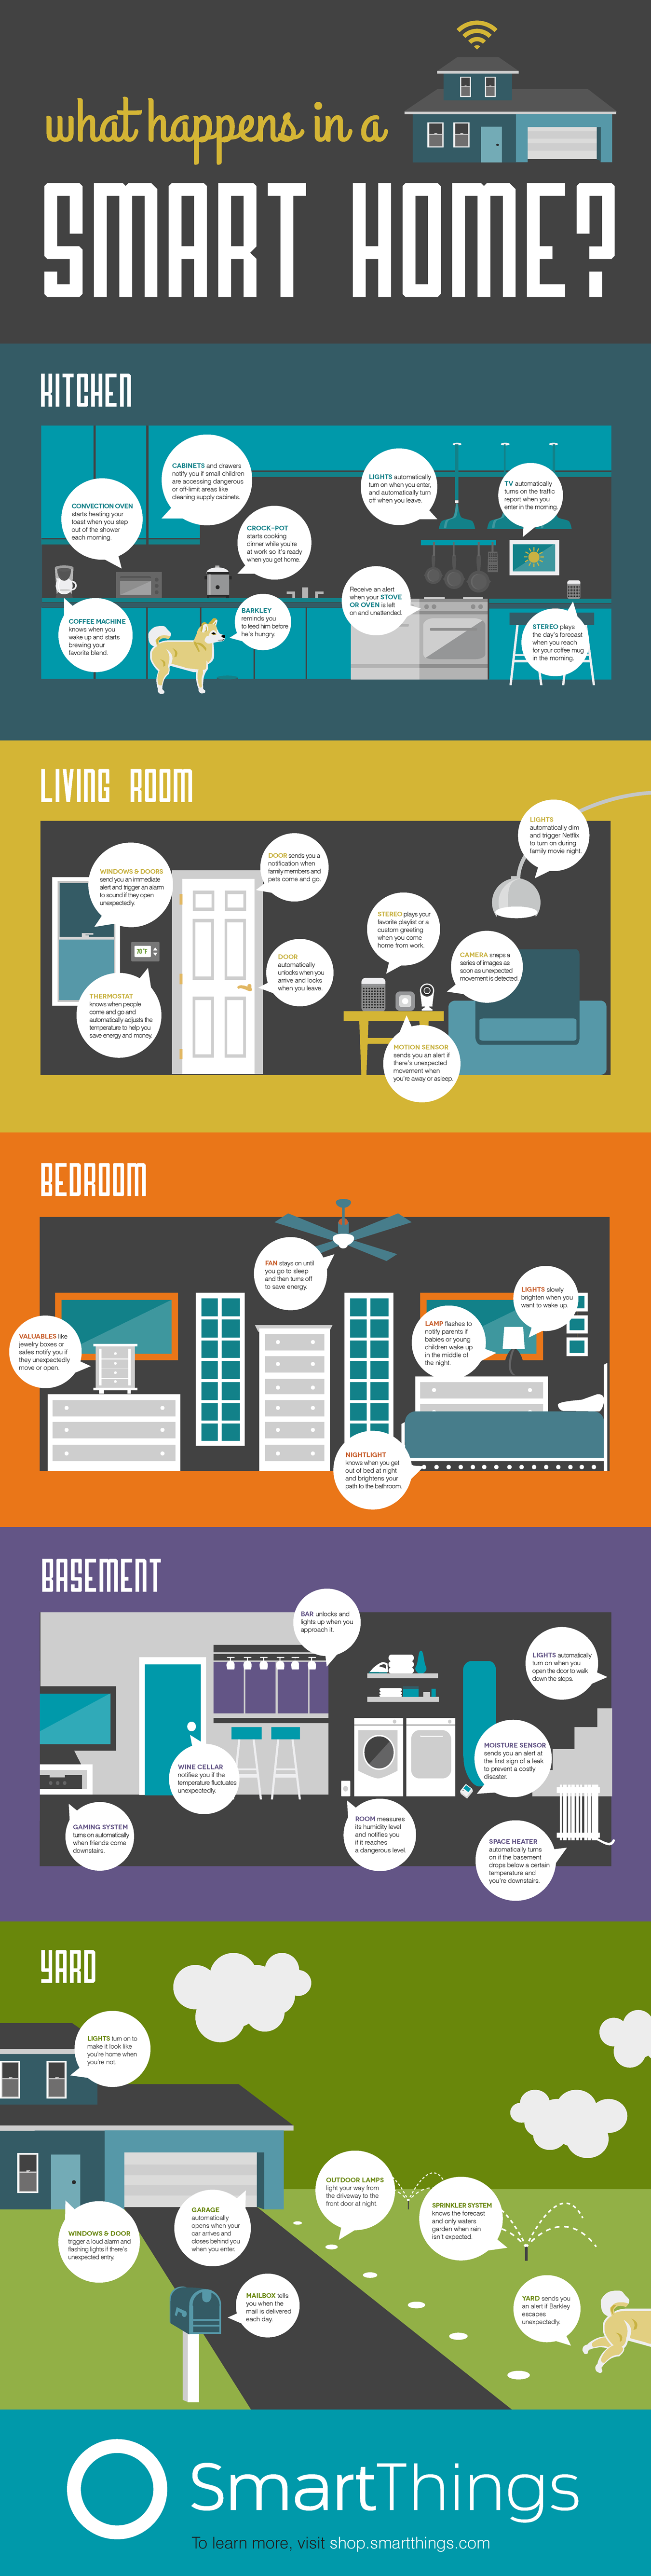 infographic smartthings smart home automation